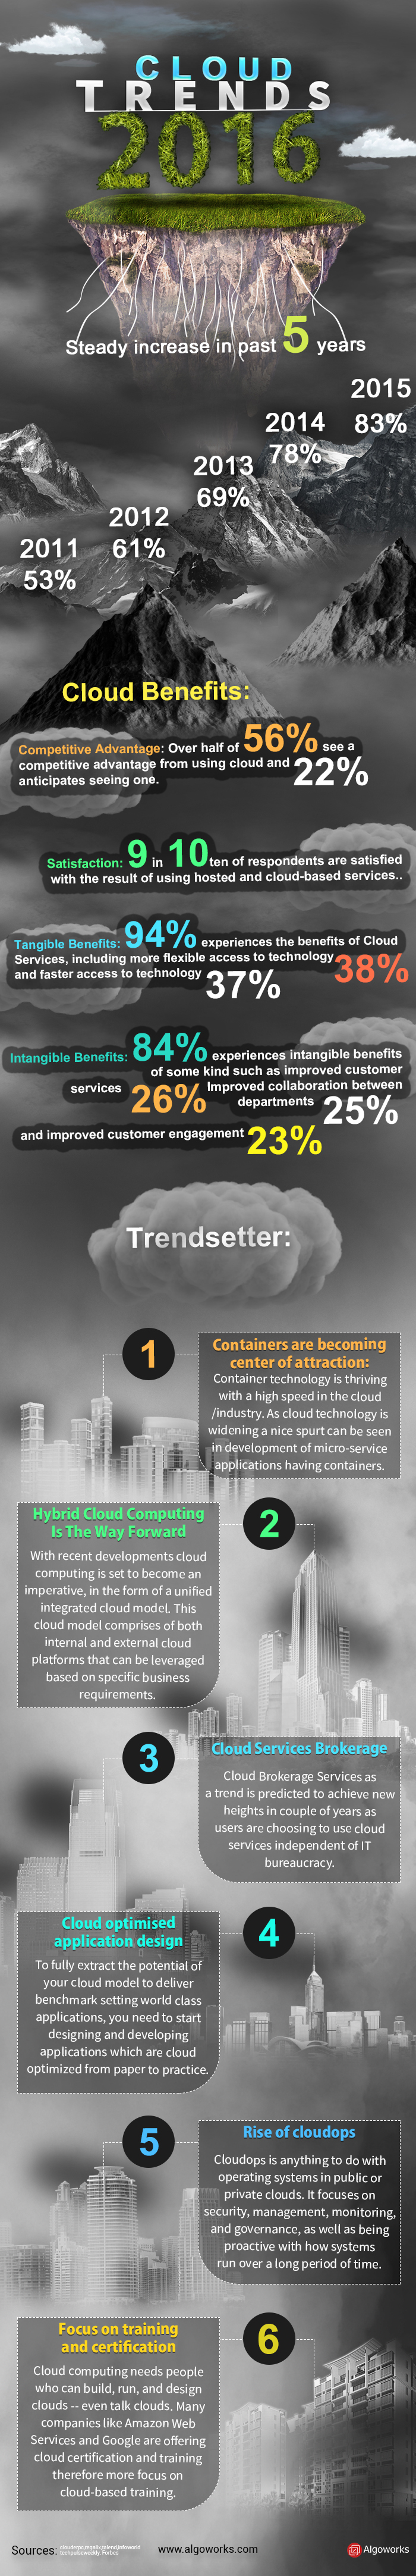 Cloud Trends 2016 | An Infographic